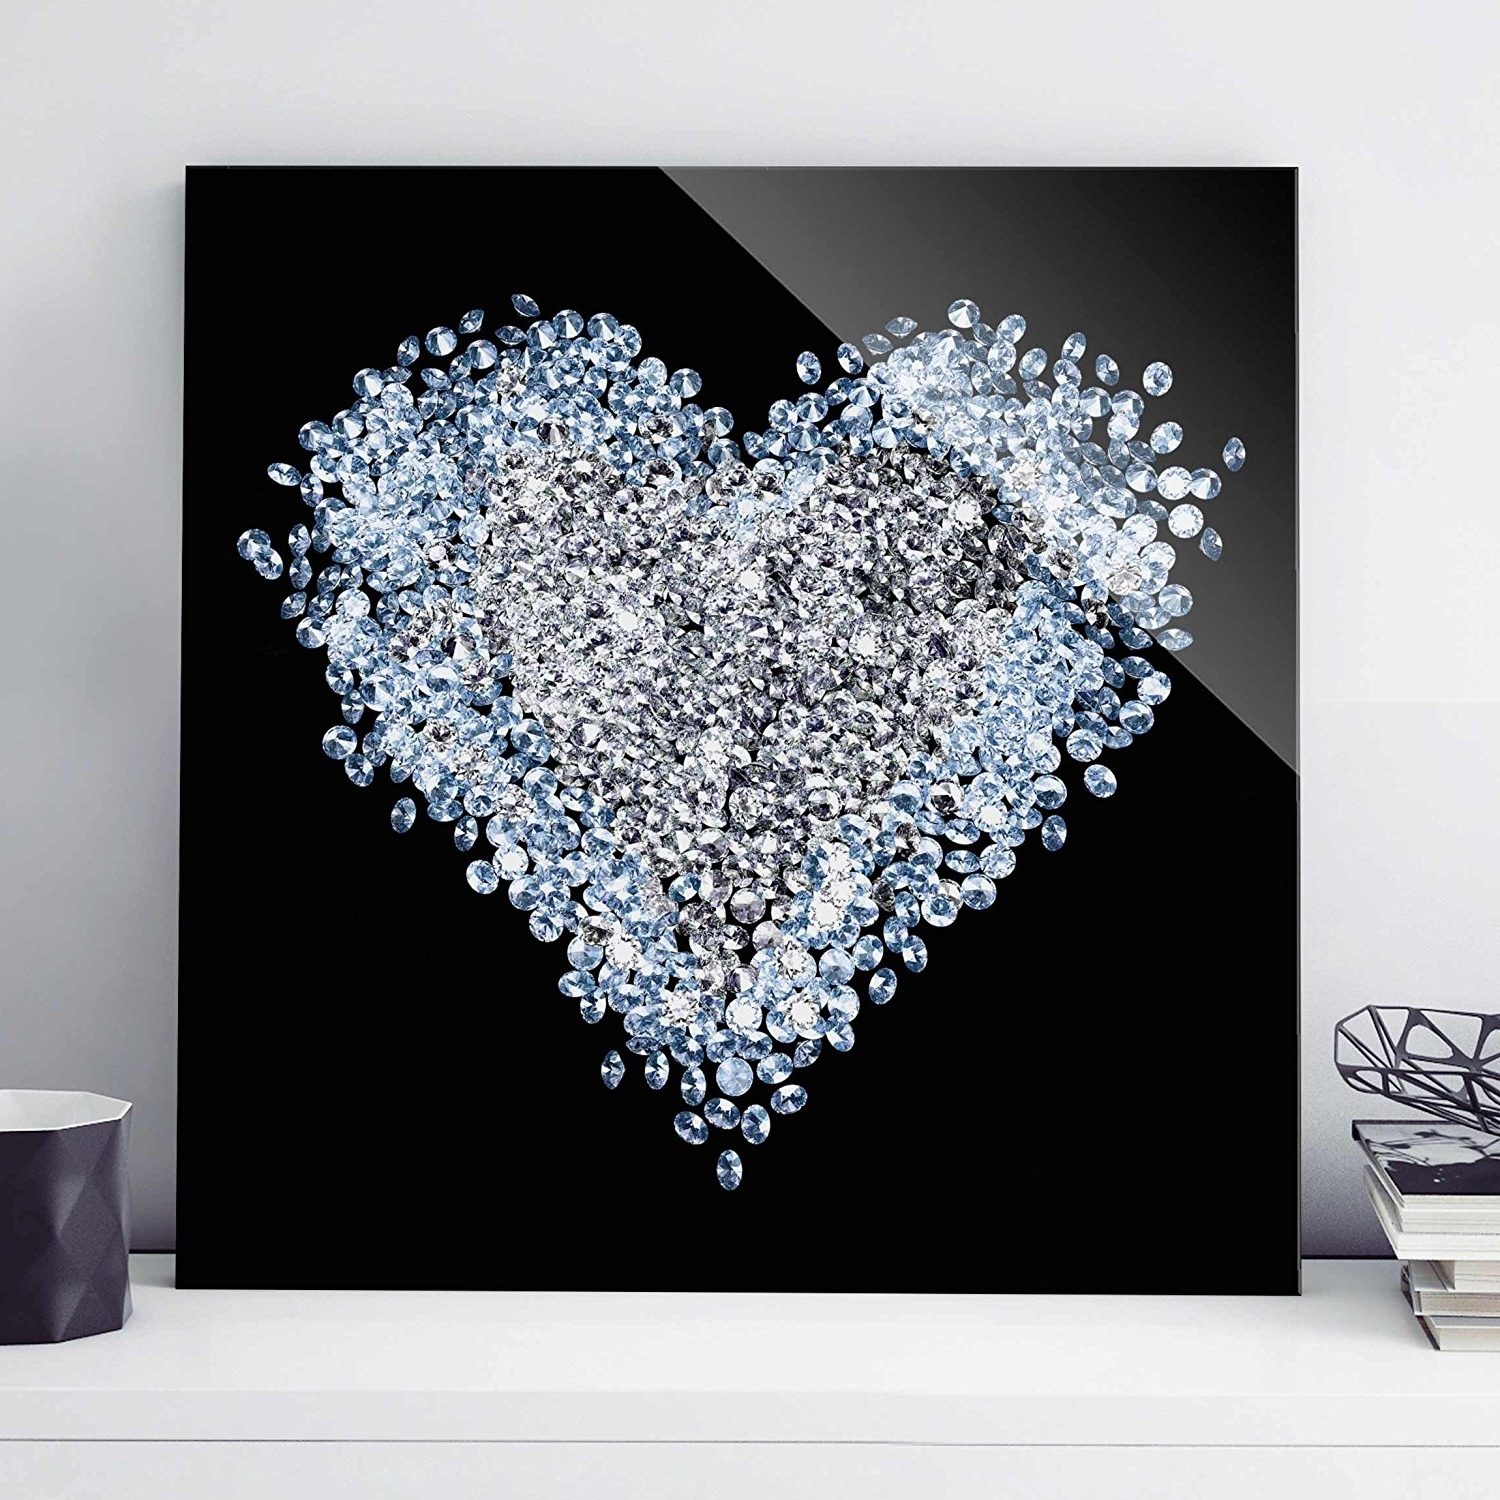 Glitter Canvas Wall Art With Regard To Popular Print On Glass Wall Art – Diamond Heart – Square 1:1, Print On (View 6 of 15)